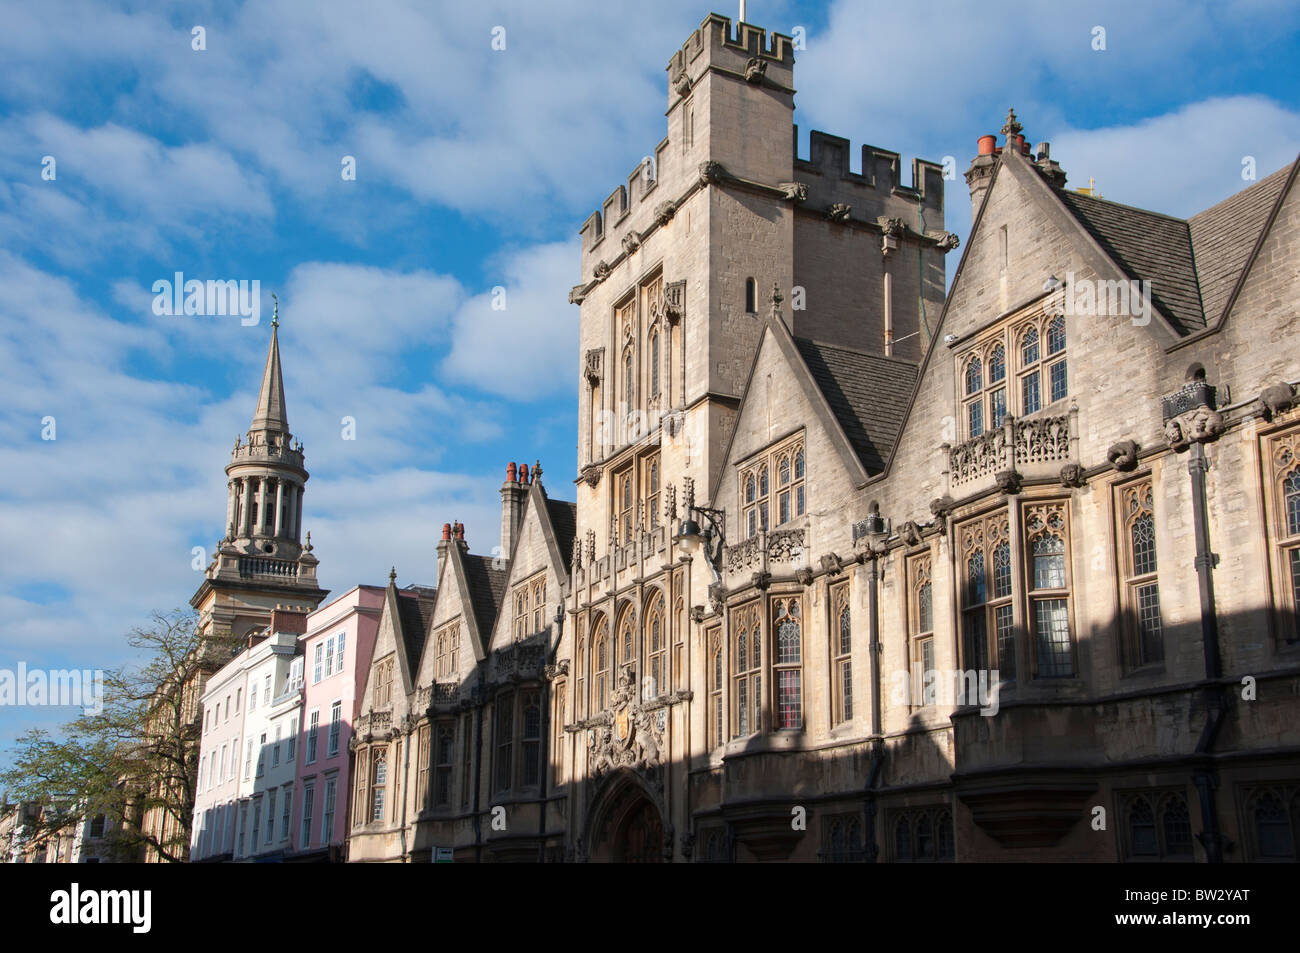 A view up Oxford high street with All Saints Church or Lincoln college library and Brasenose College Oxford England. - Stock Image